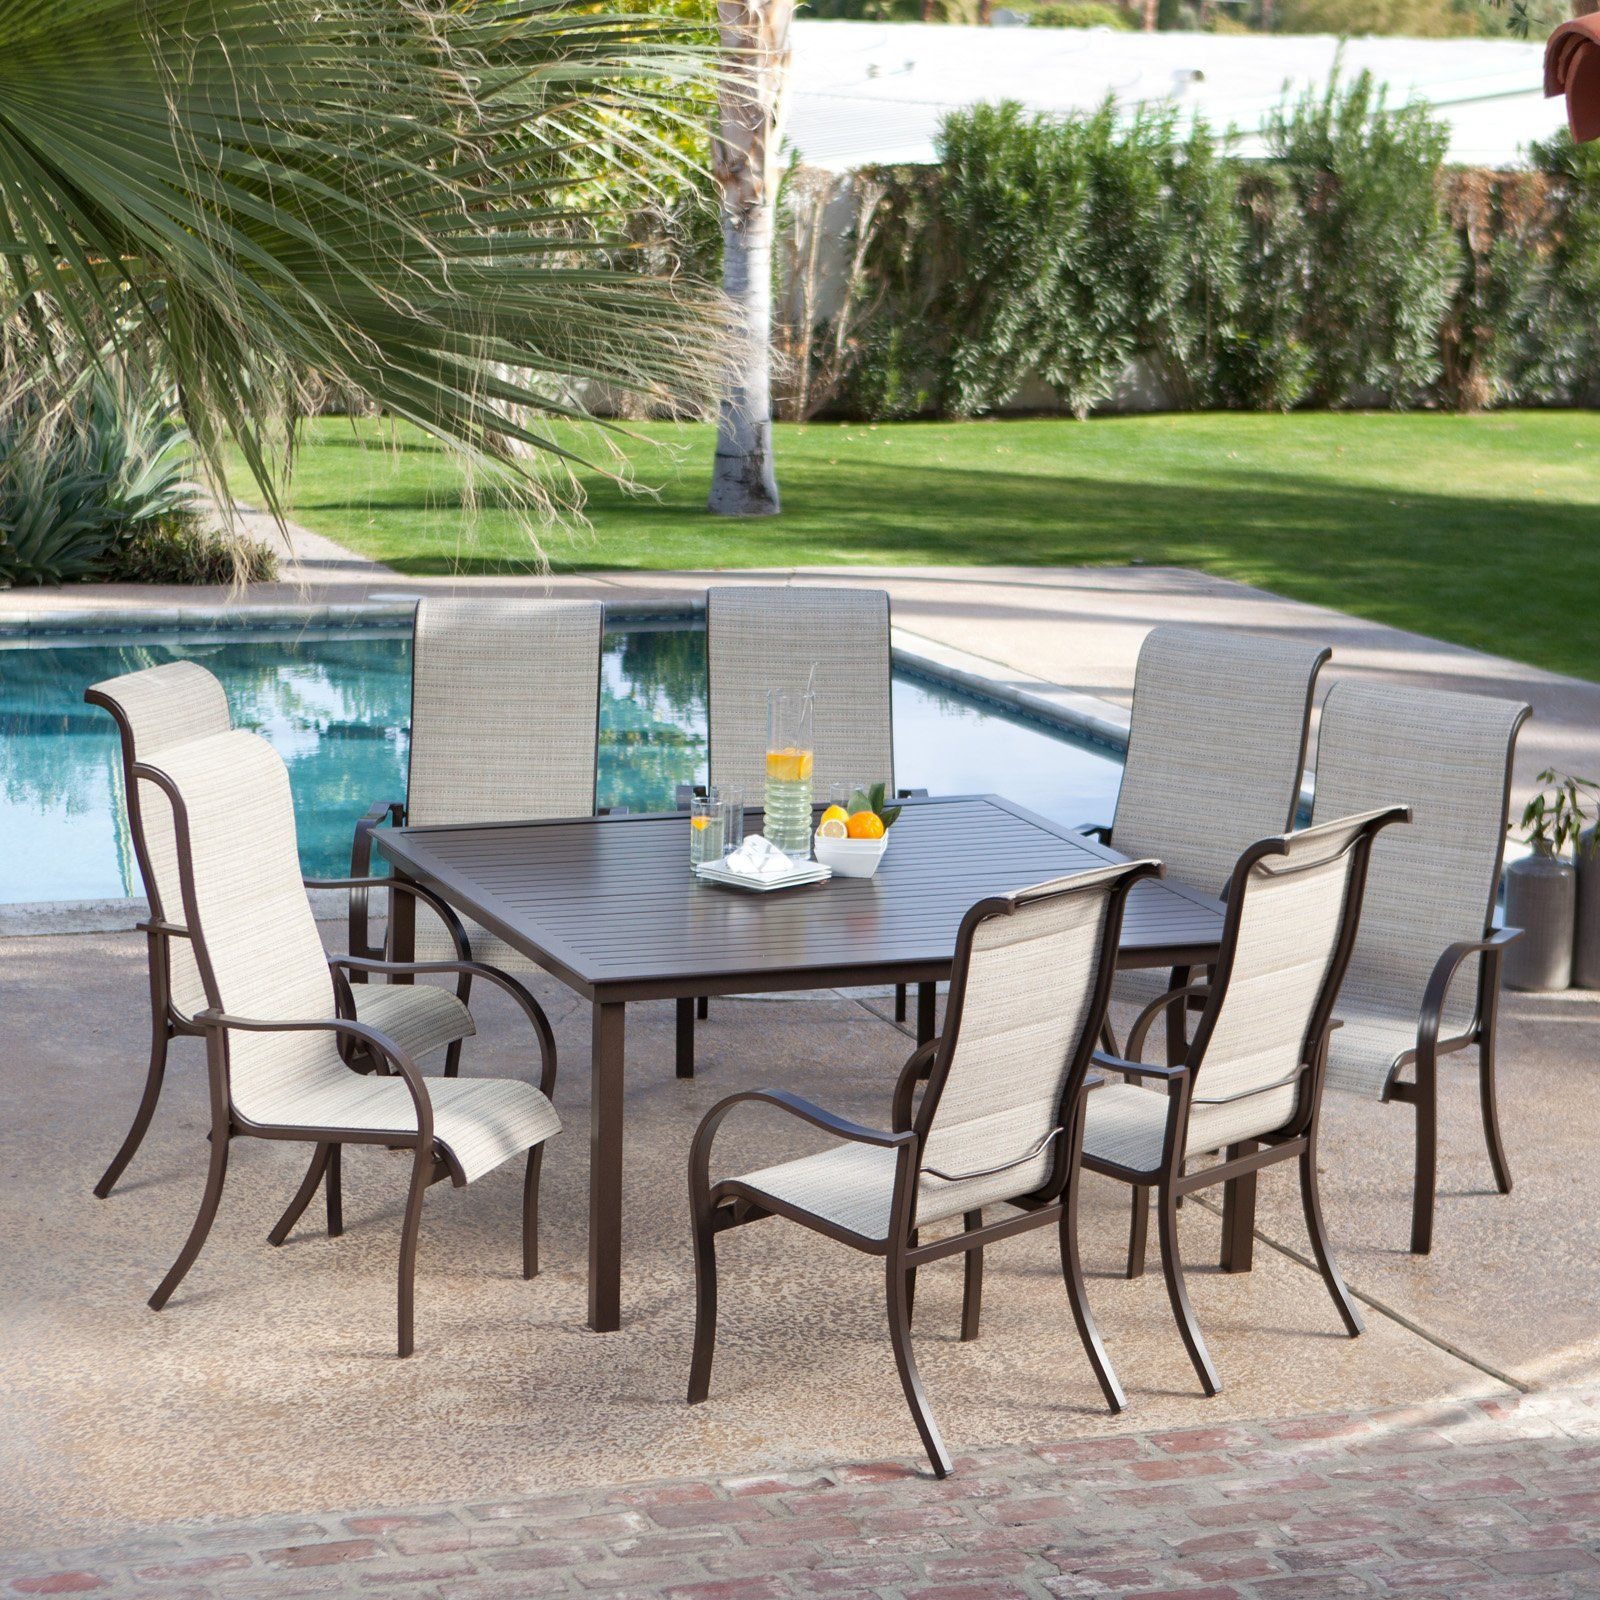 42+ Square outdoor dining set Trend